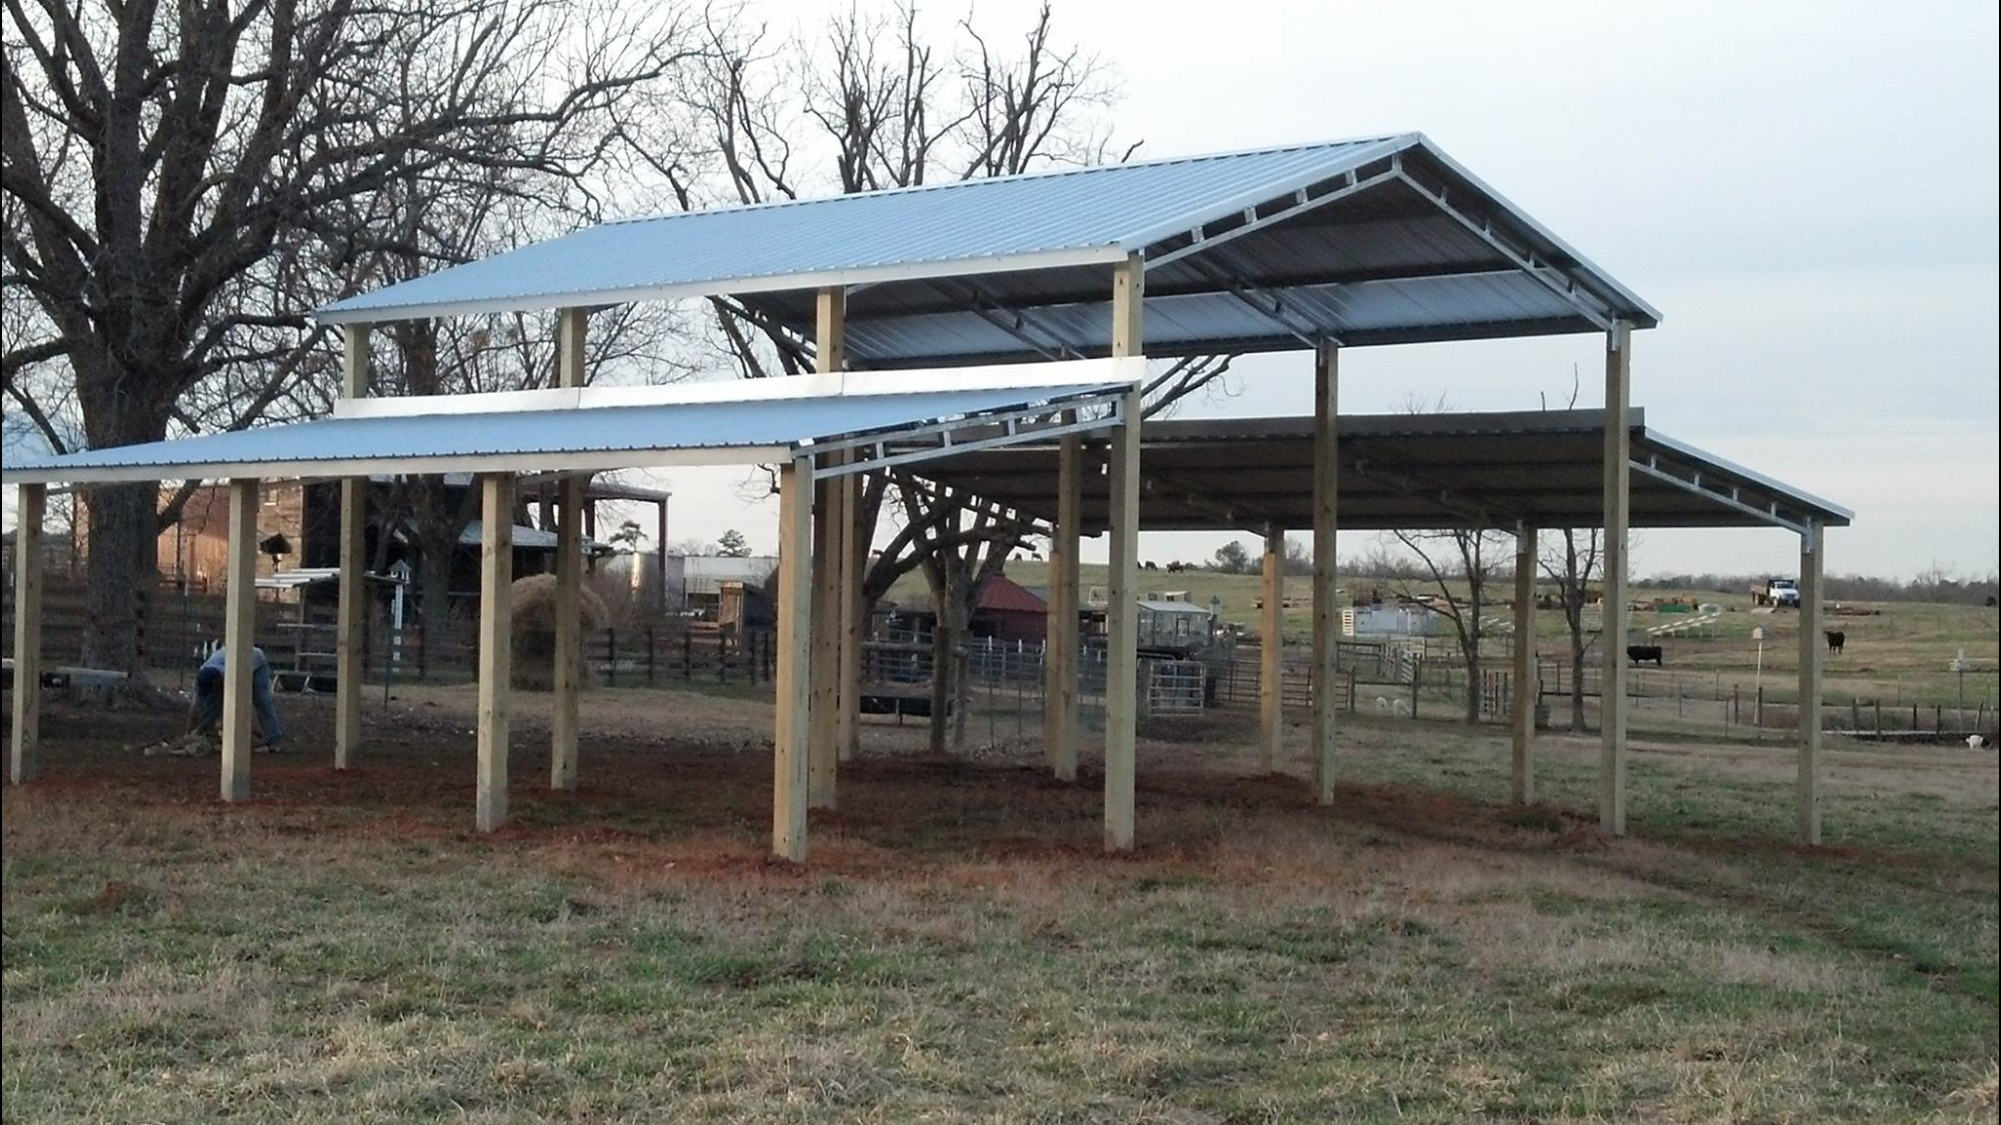 Monitor Barn Style Pole Building Using Metal Trusses